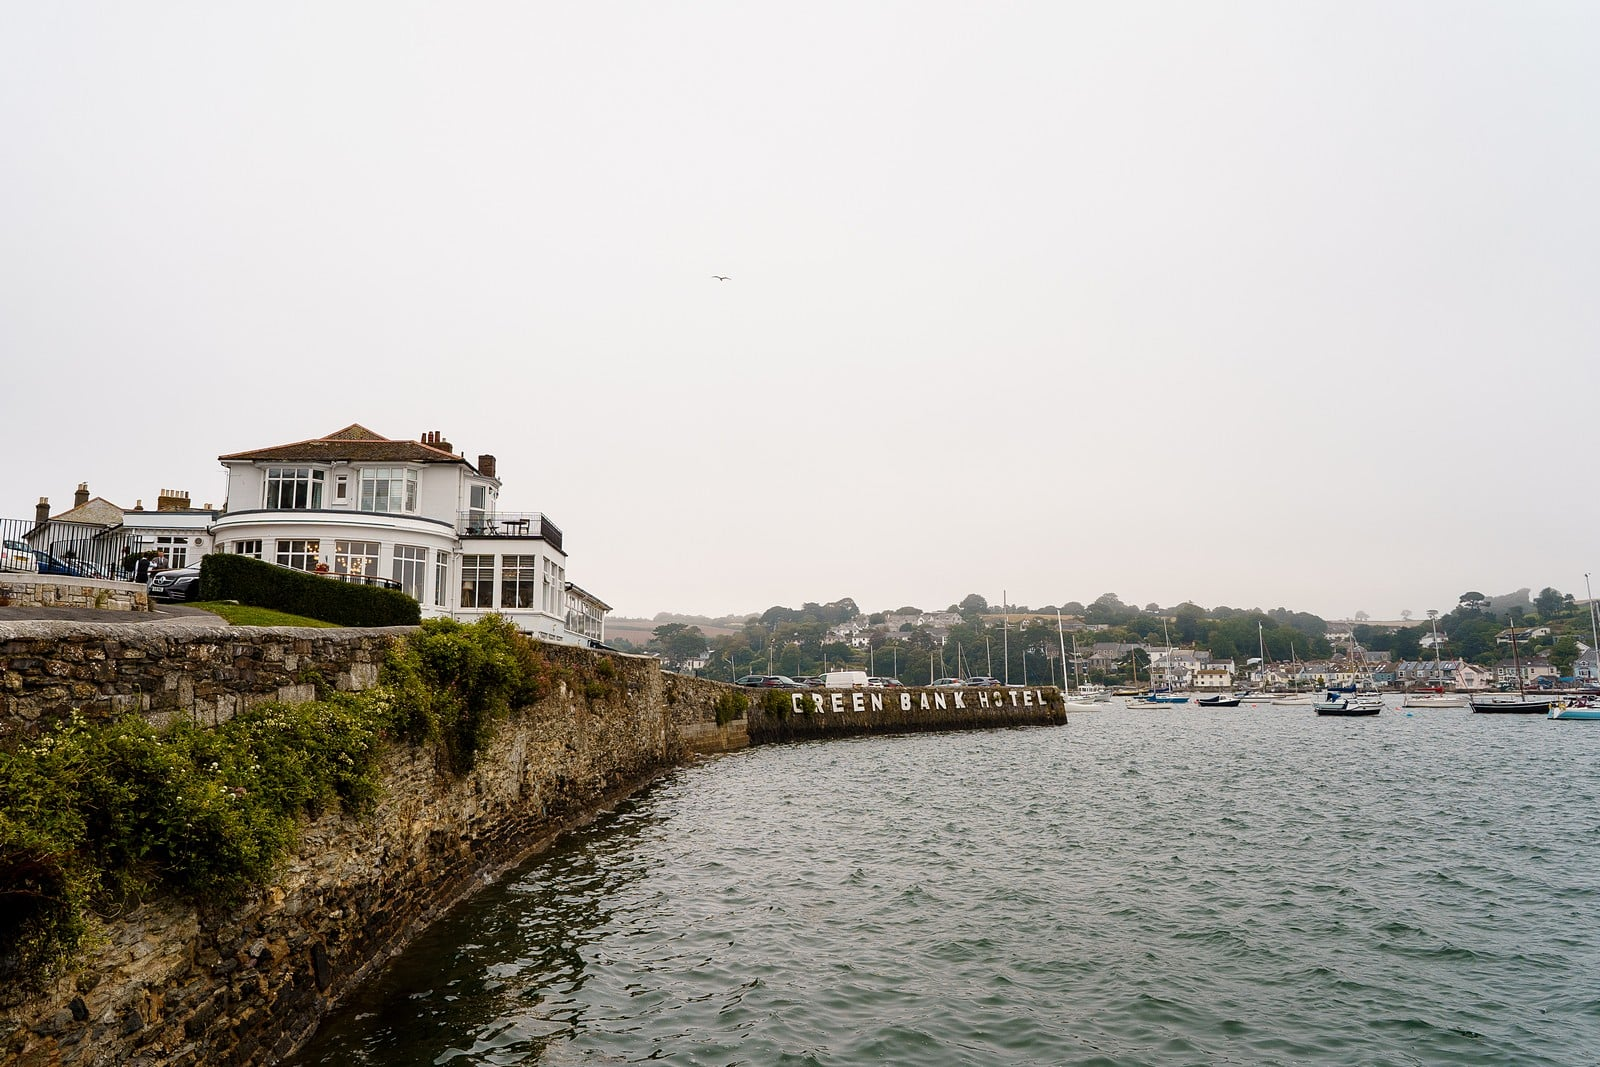 The Greenbank hotel wedding venue in Flamouth